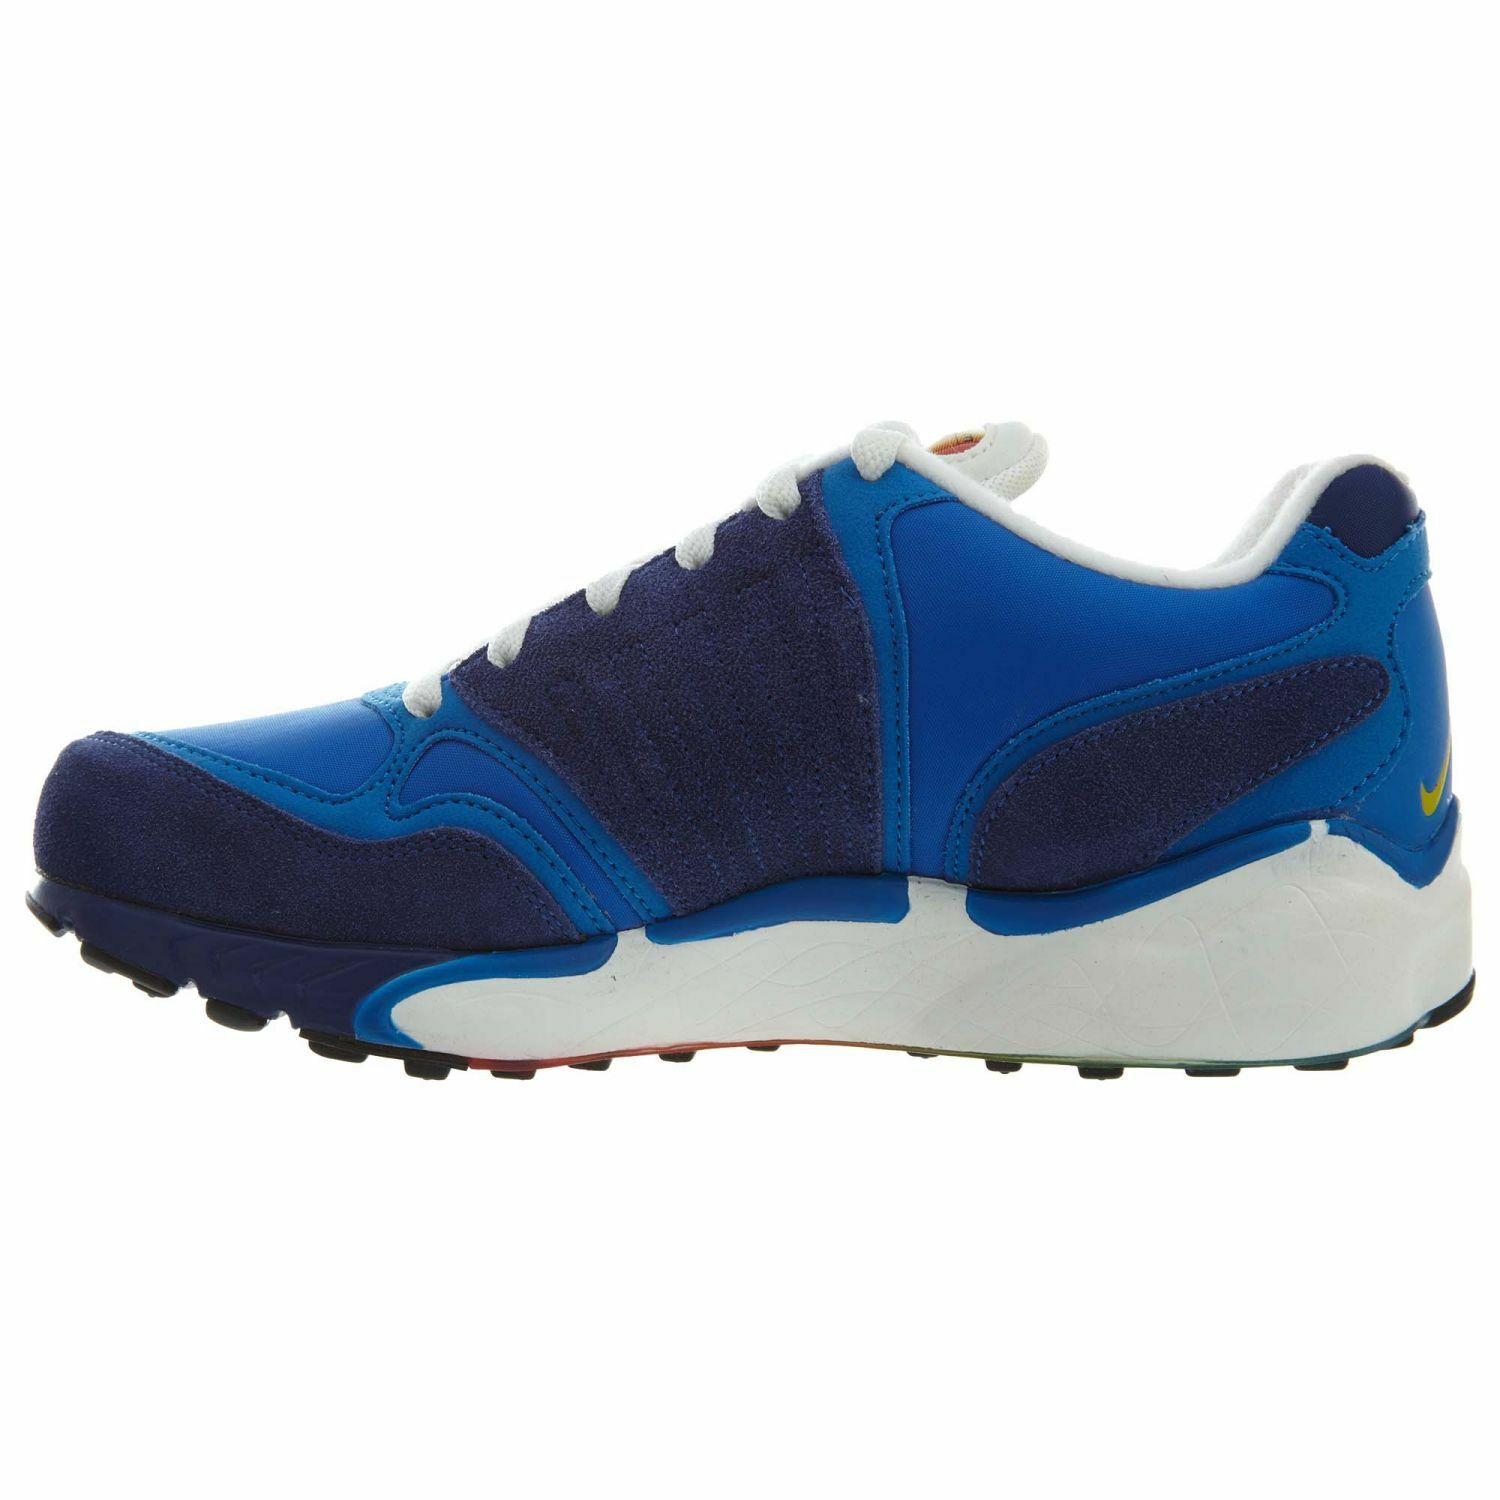 Nike Air Zoom Talaria '16 Mens 844695-401 844695-401 844695-401 Soar bluee Running shoes Size 8.5 f20e89